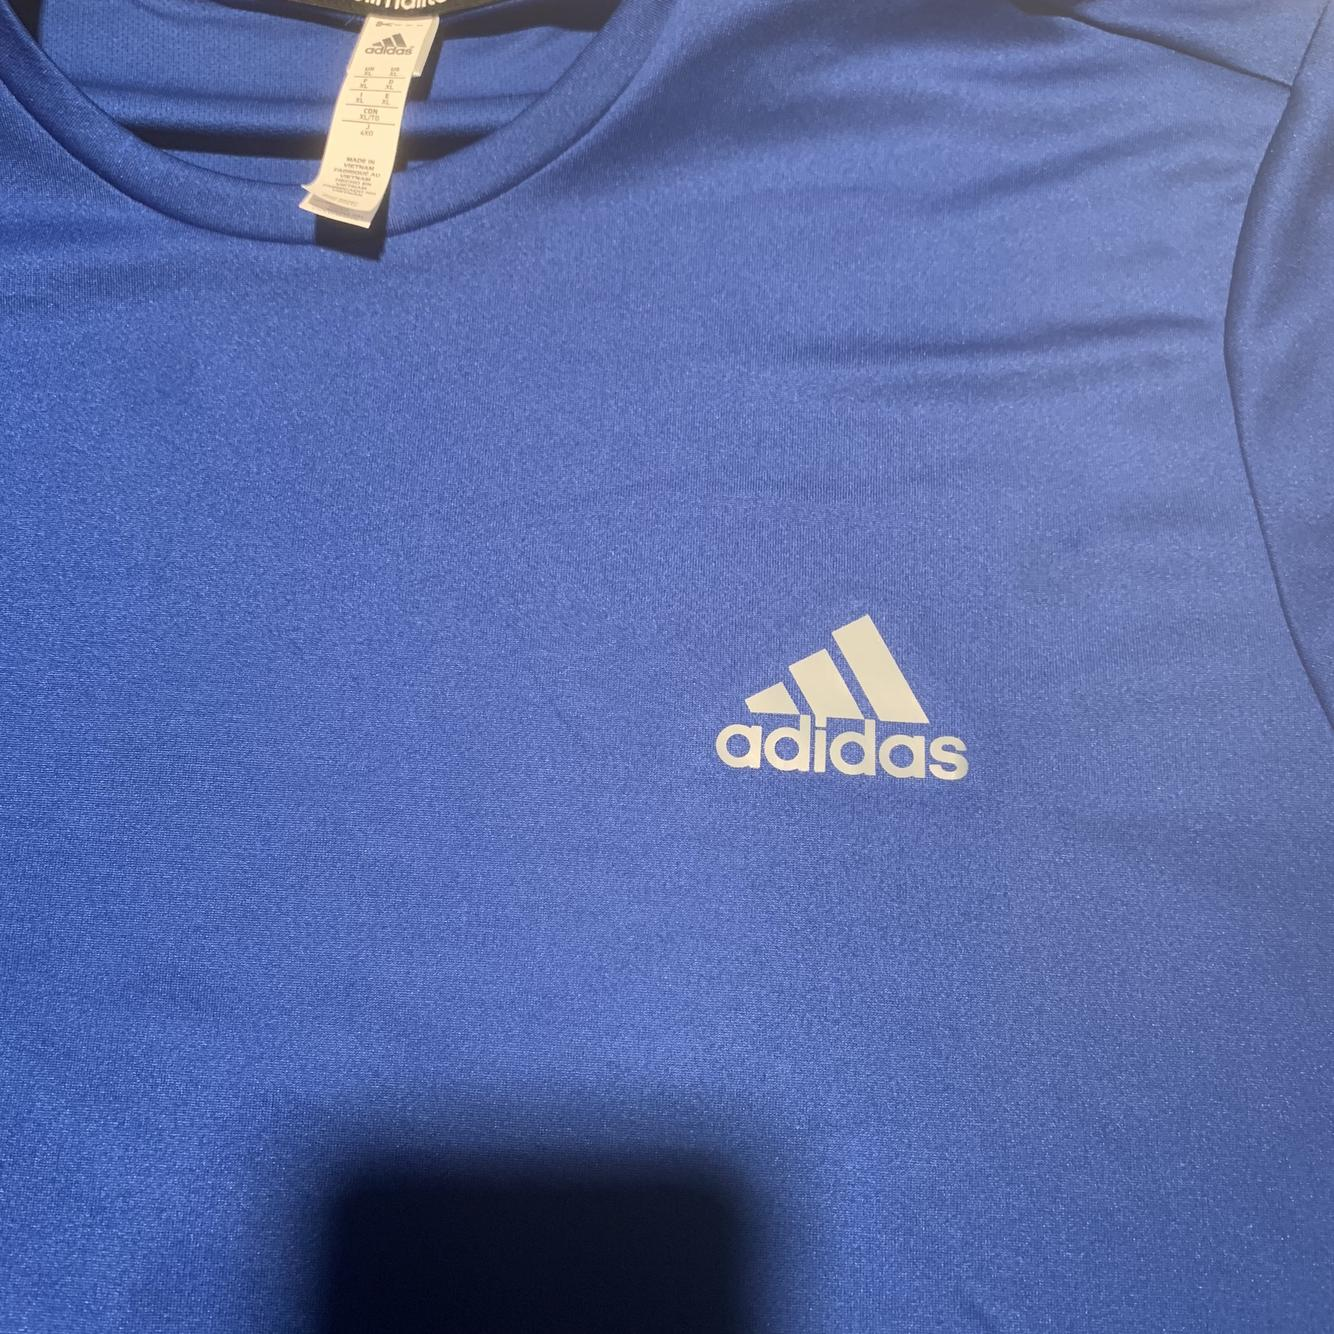 Like New Blue Men's XL Adidas Dry Fit Shirt | SidelineSwap